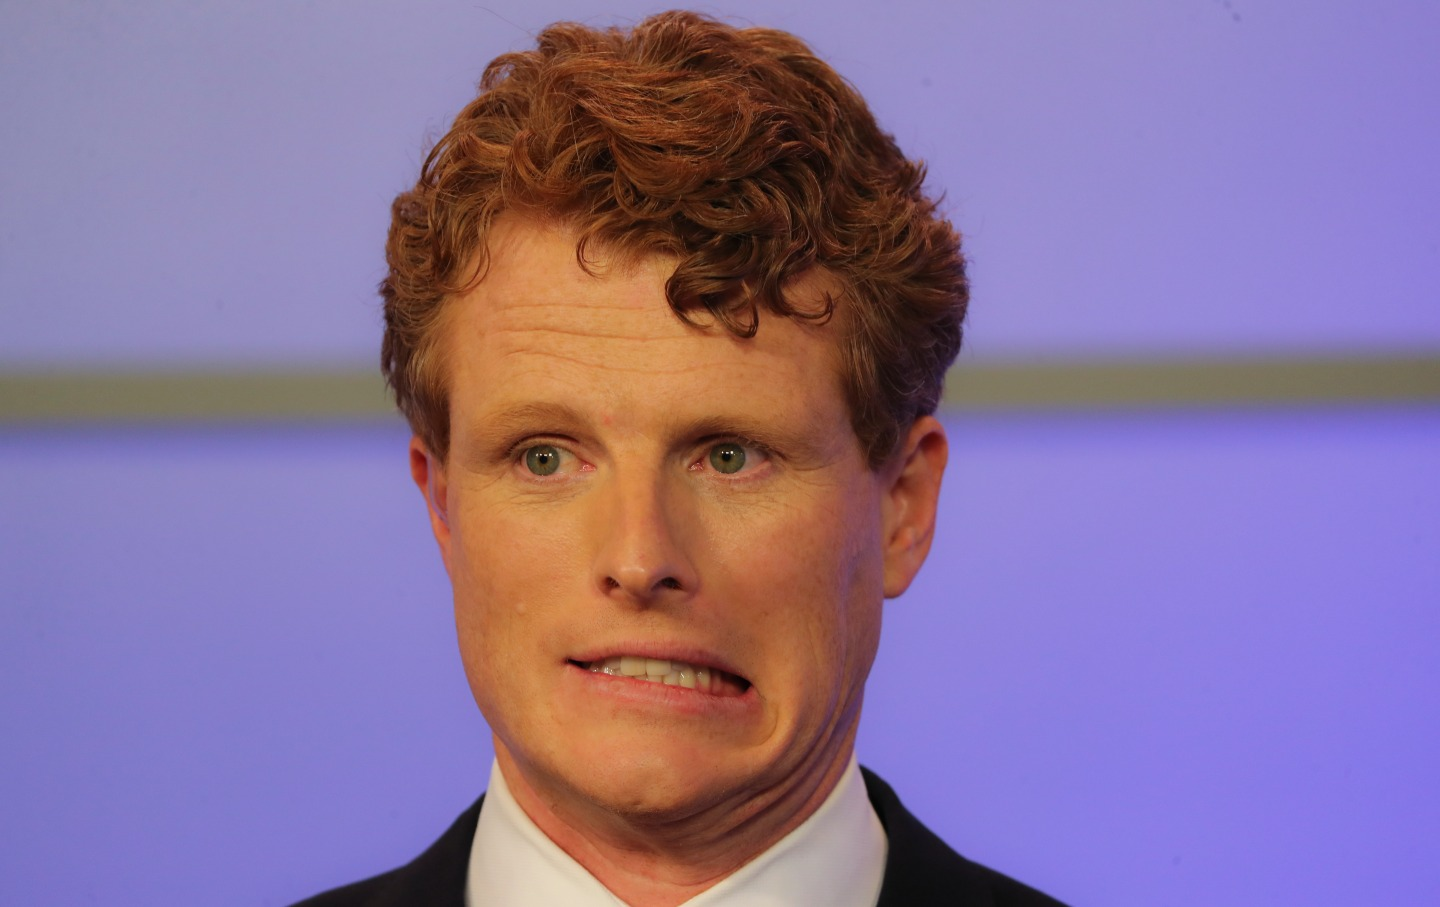 Joe Kennedy grimacing